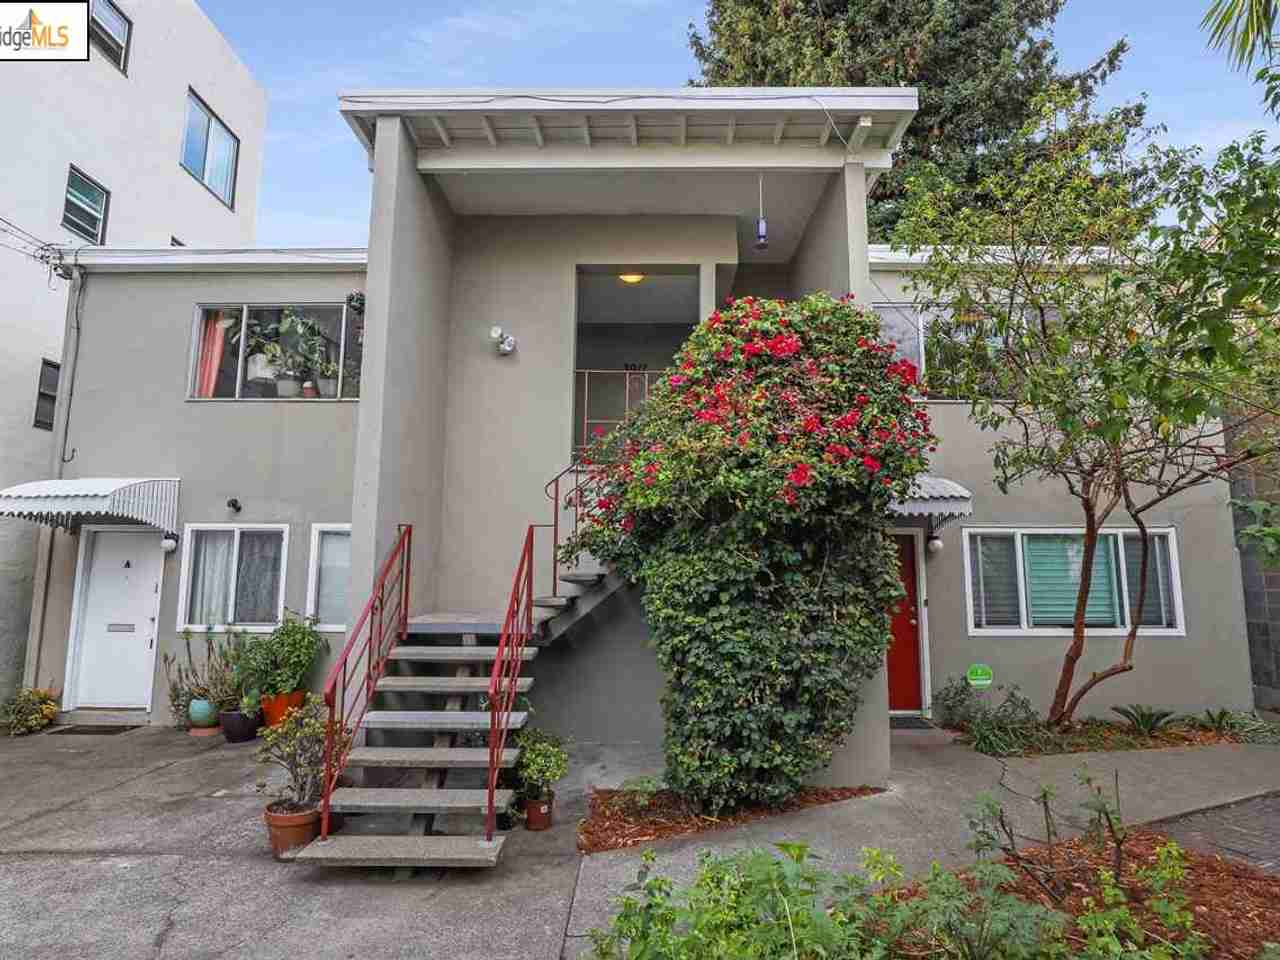 3911 Shafter Ave Oakland, CA, 94609